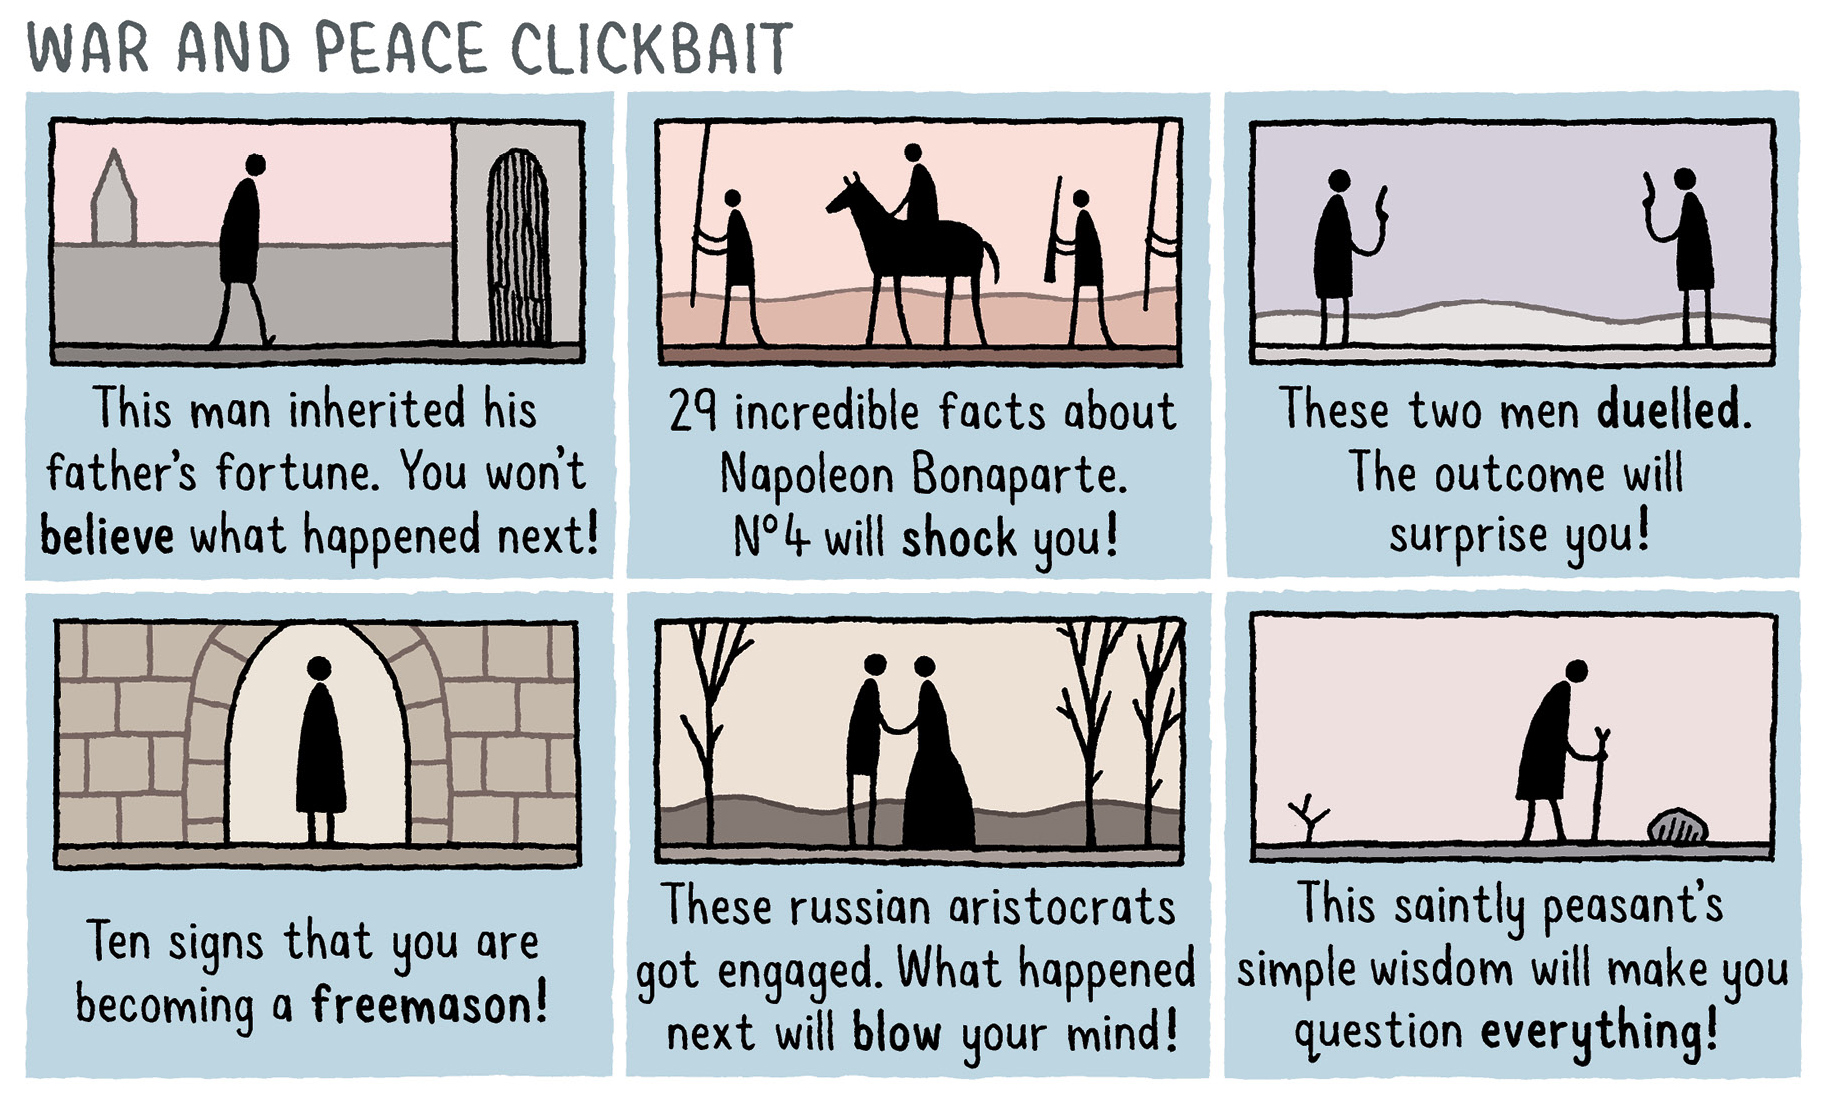 War And Peace Clickbait